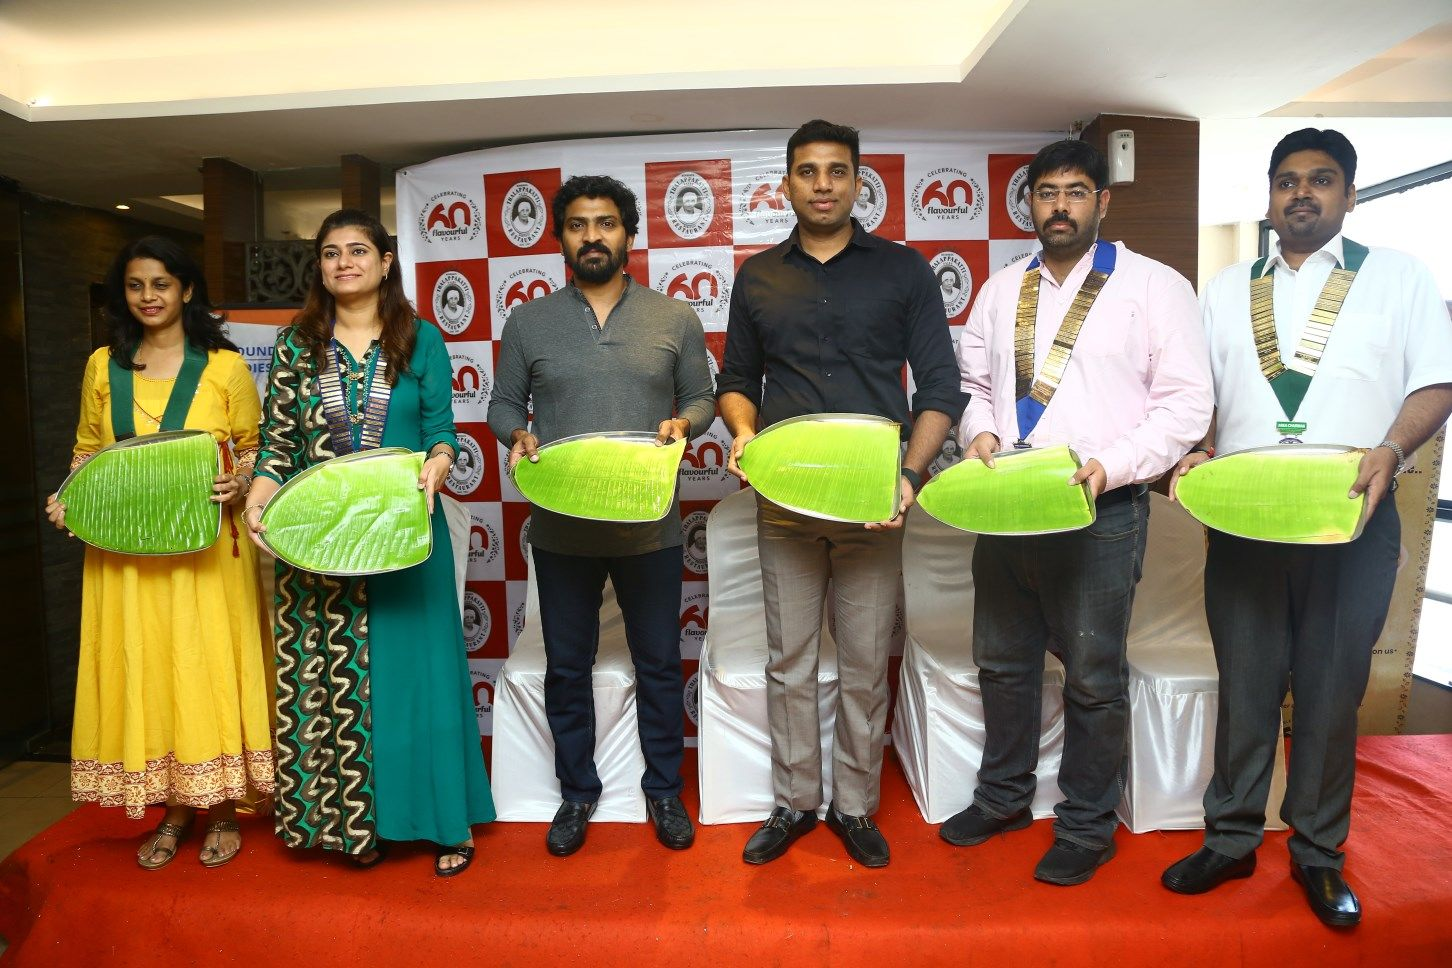 Actor Vaibhav Reddy Launches Dindigul Thalapakatti Clean Plate Challenge Fund Raiser support for Cancer patients Stills